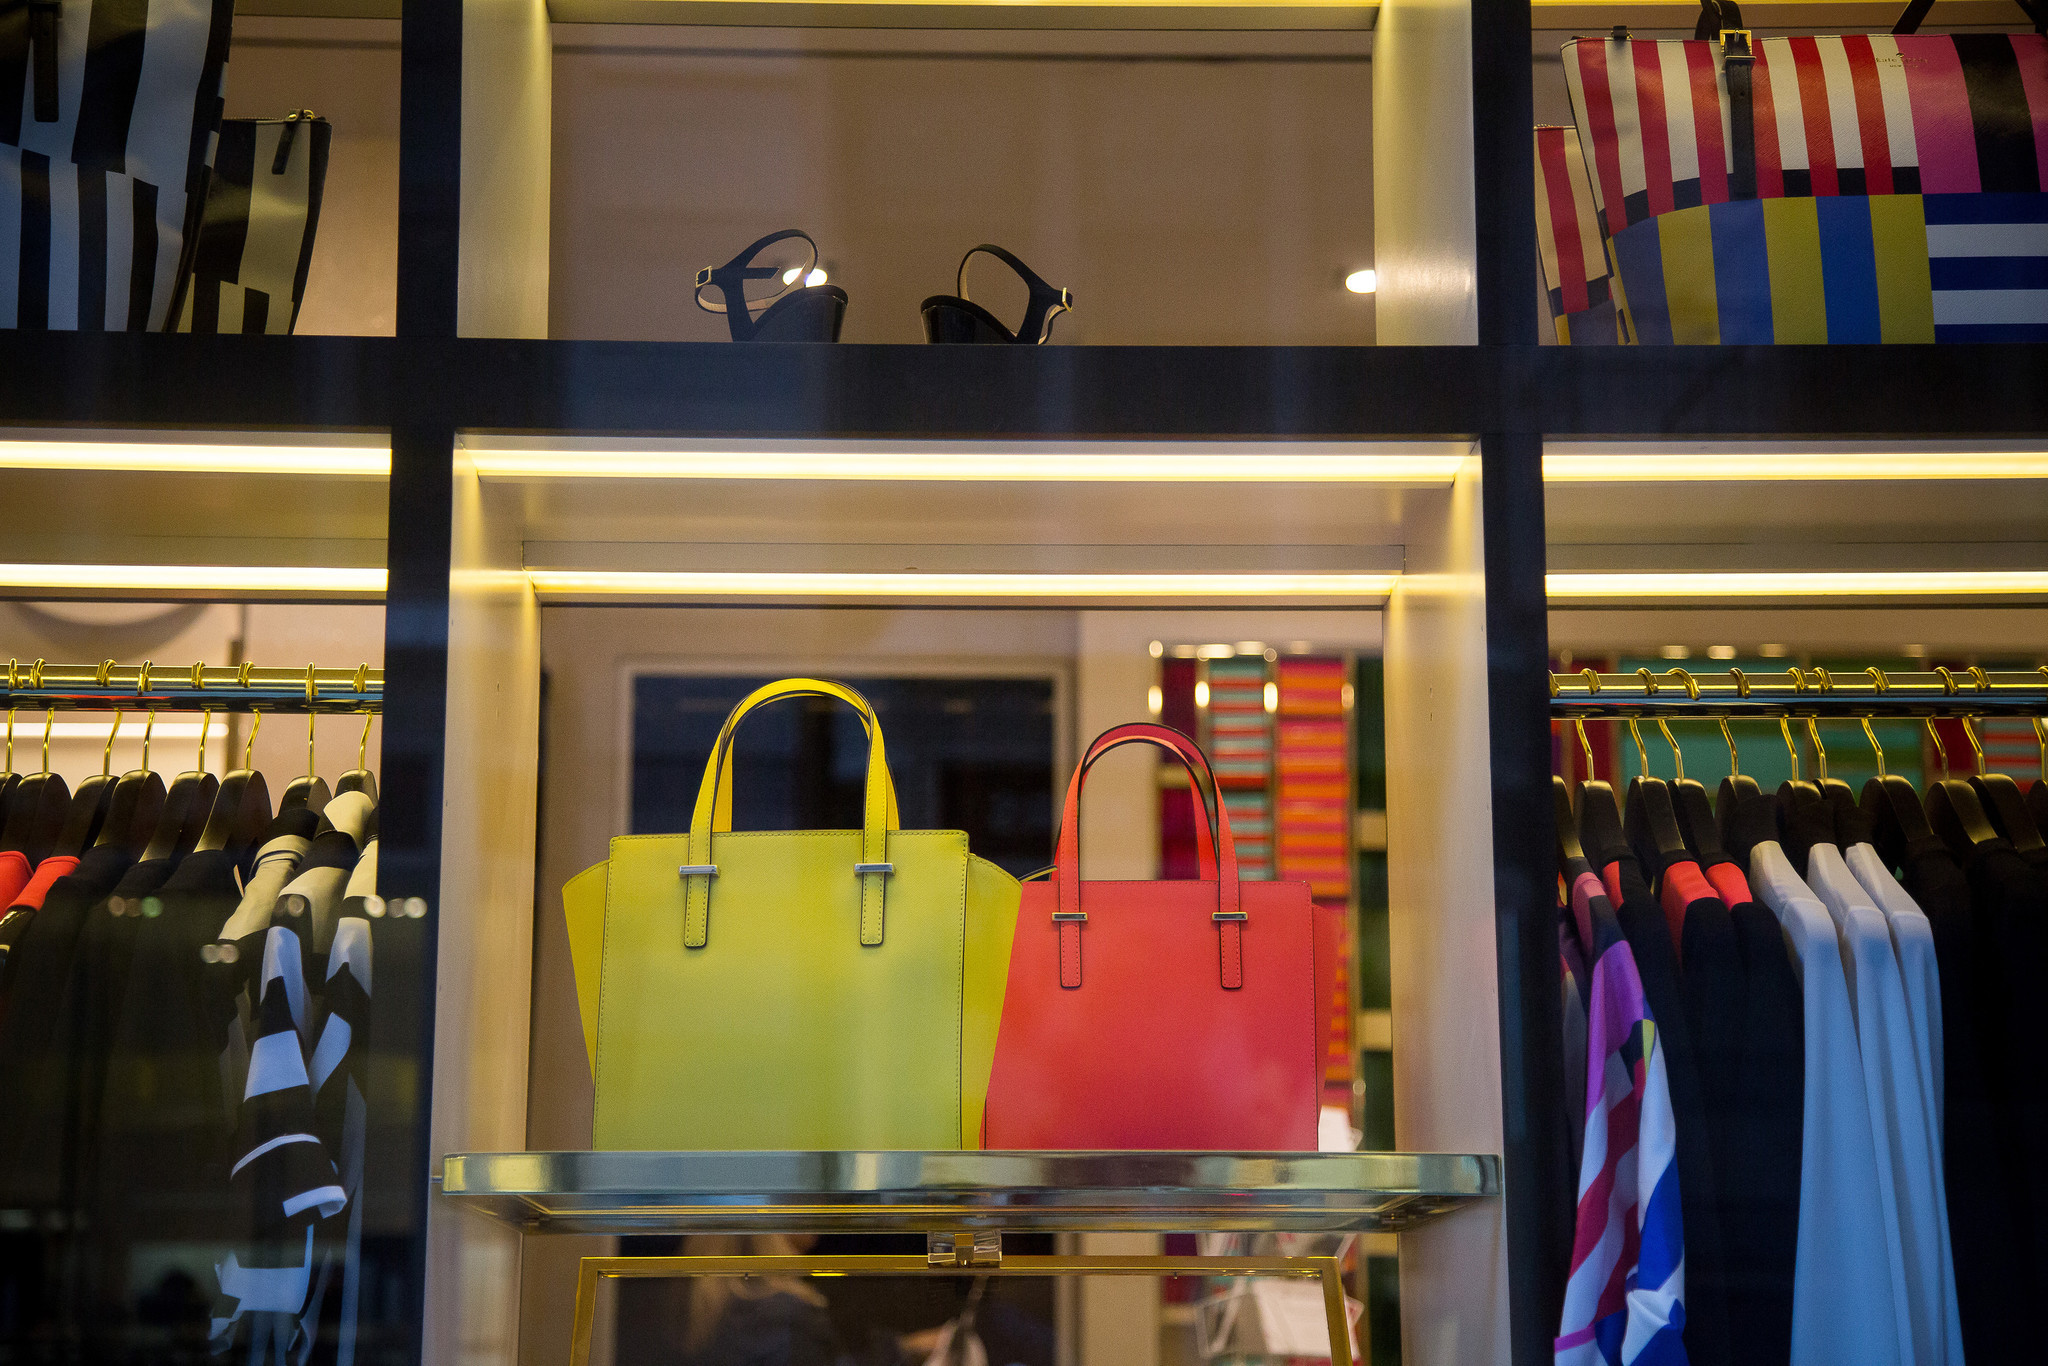 Looking Back On The Designs And Styles Of Kate Spade And The Brand